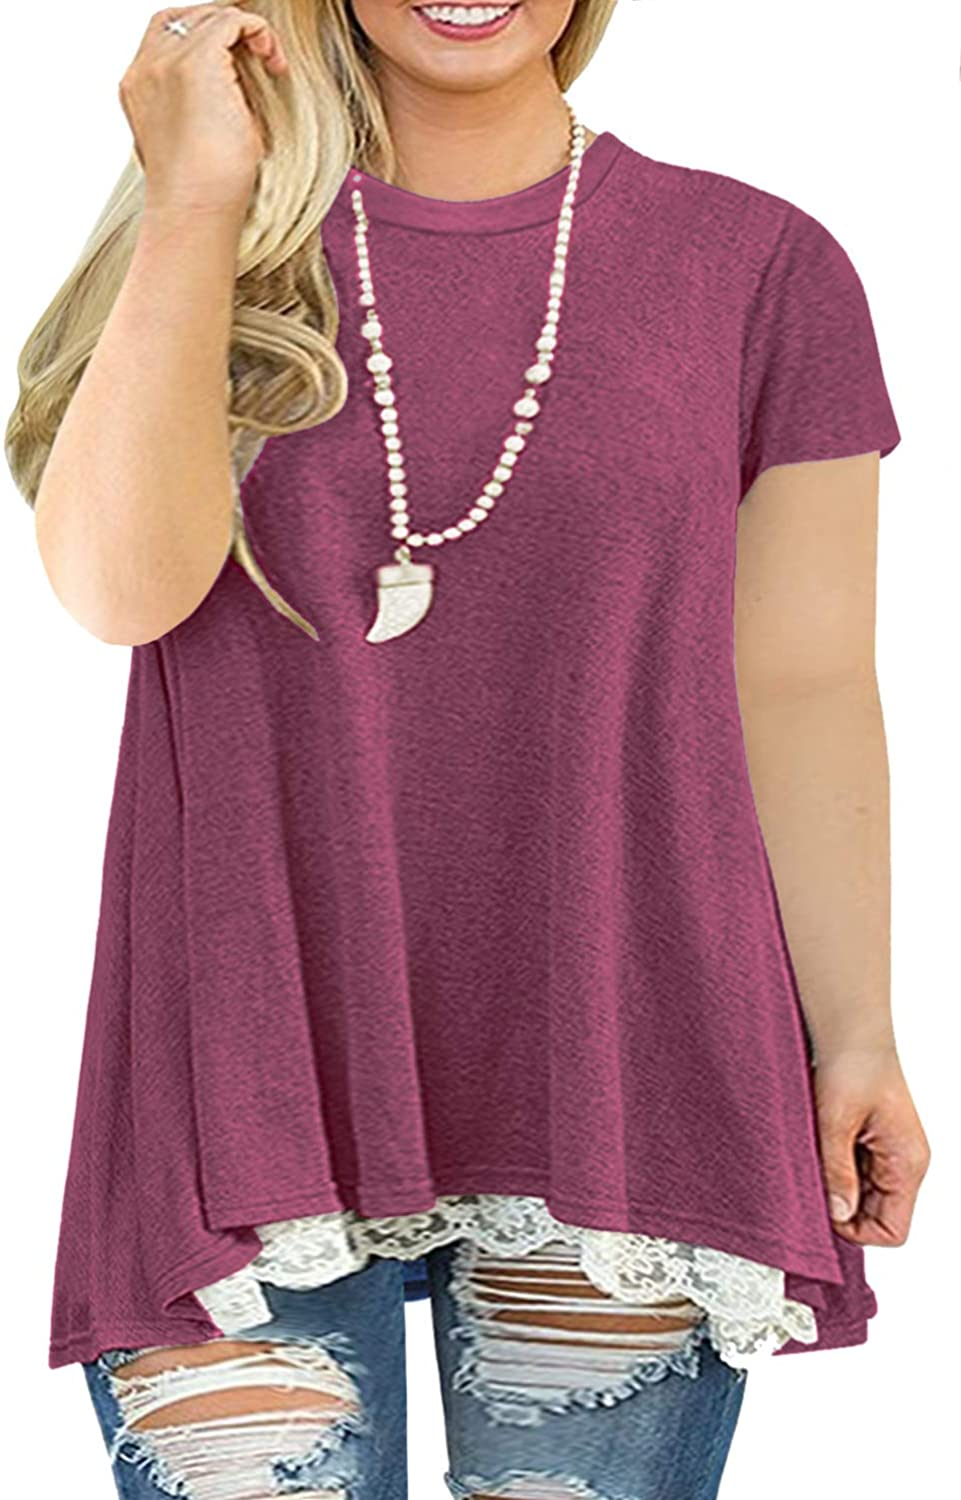 AURISSY Womens Plus-Size Tops Summer Lace Shirts A-Line Short Sleeve Tunic